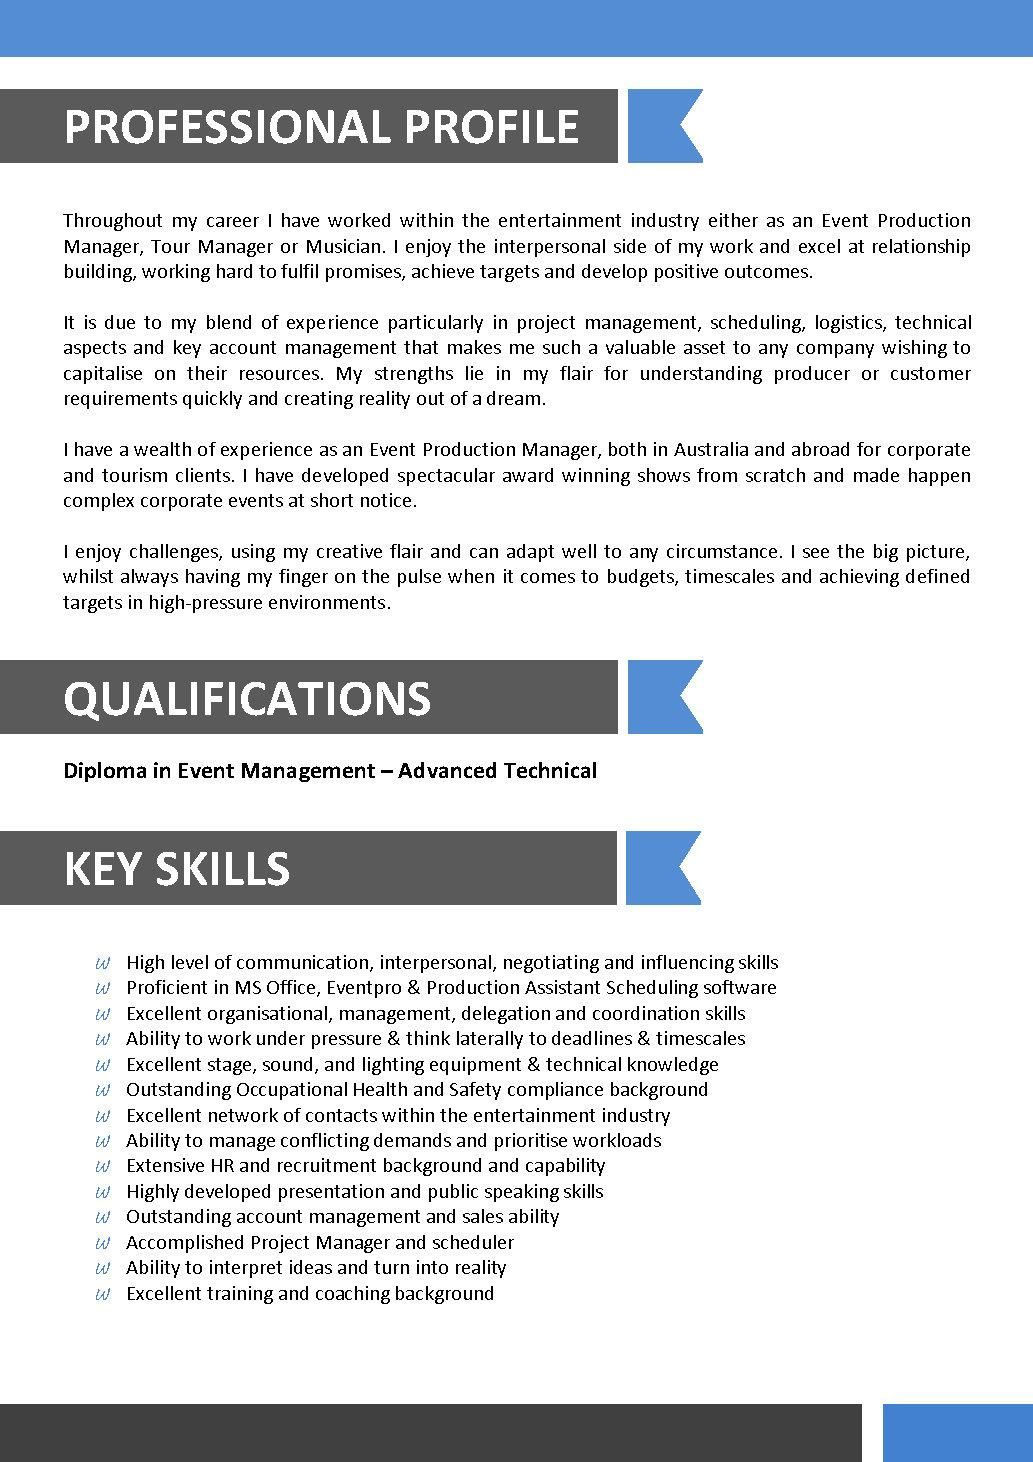 Sample Resume For Entertainment Industry